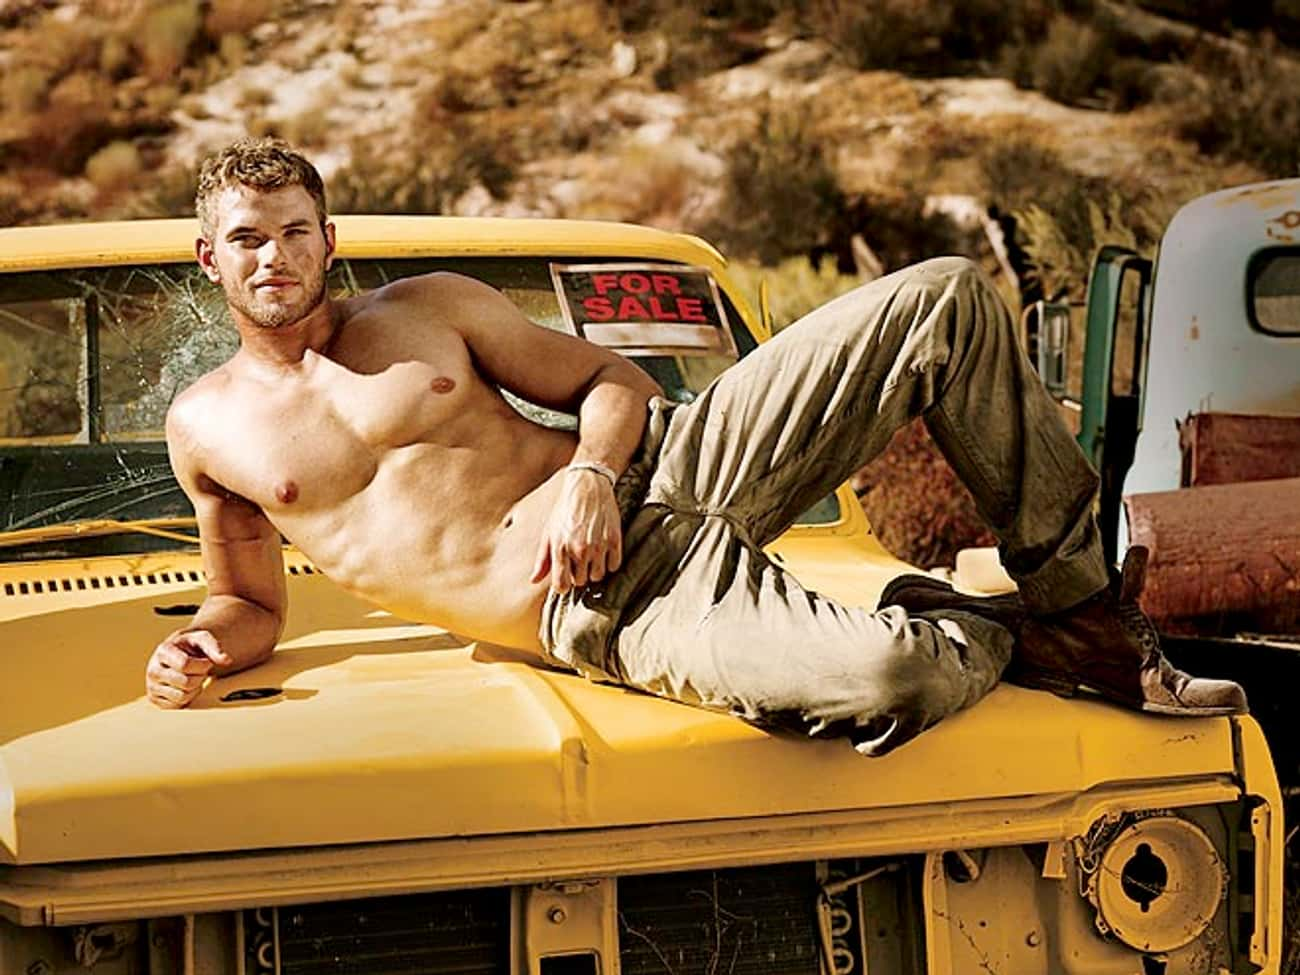 Kellan Lutz in Warehouse Pants is listed (or ranked) 4 on the list Hot Kellan Lutz Photos